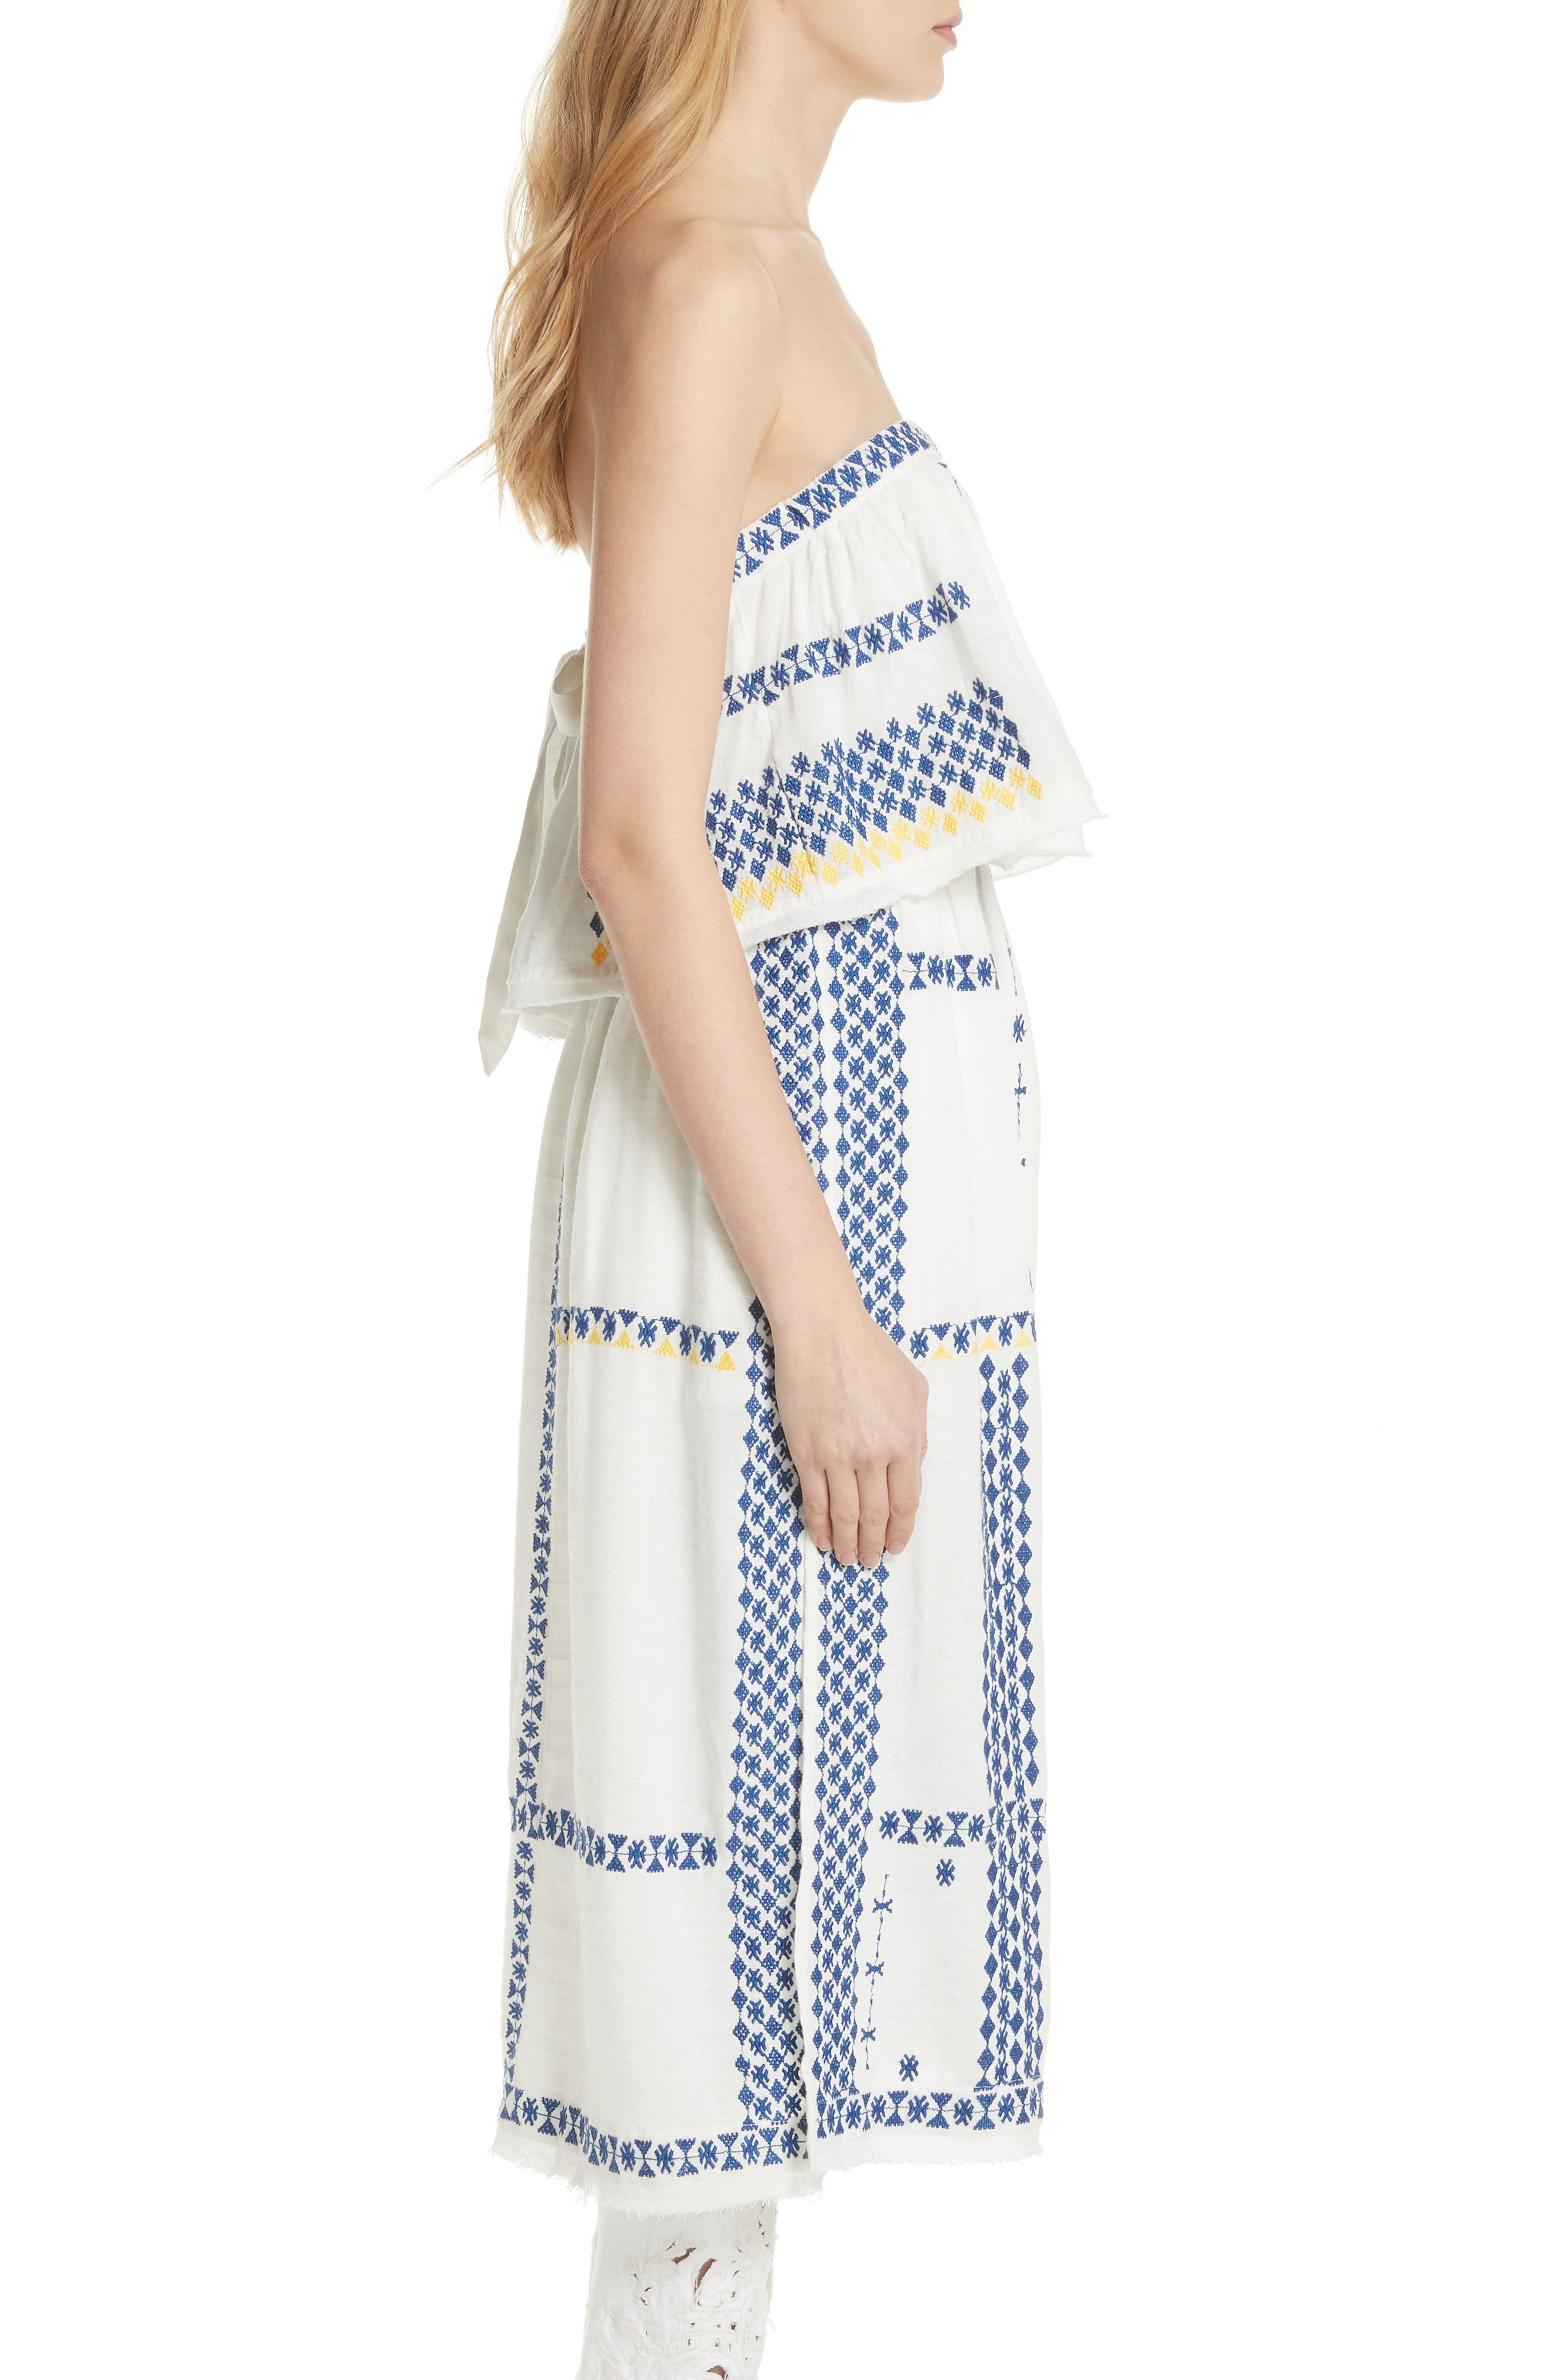 Wild Romance Embroidered Dress,                             Alternate thumbnail 3, color,